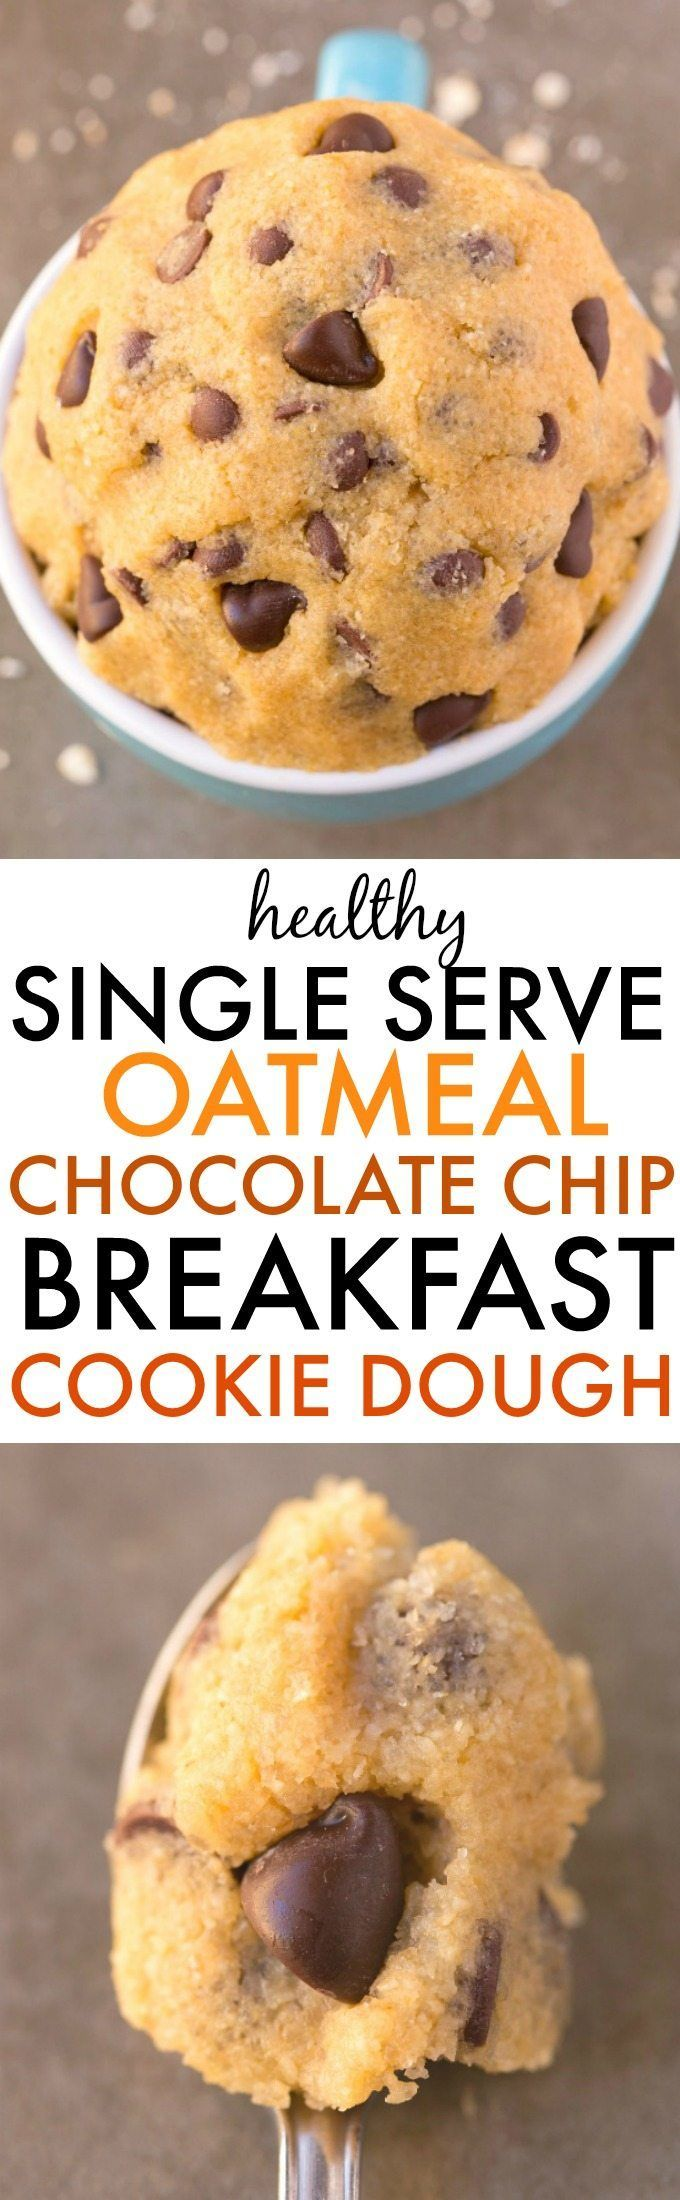 Healthy SINGLE SERVE Oatmeal Chocolate Chip BREAKFAST Cookie Dough NO Eggs Flour White Sugar Butter Or Dairy And Acceptable For Breakfast Quick Easy